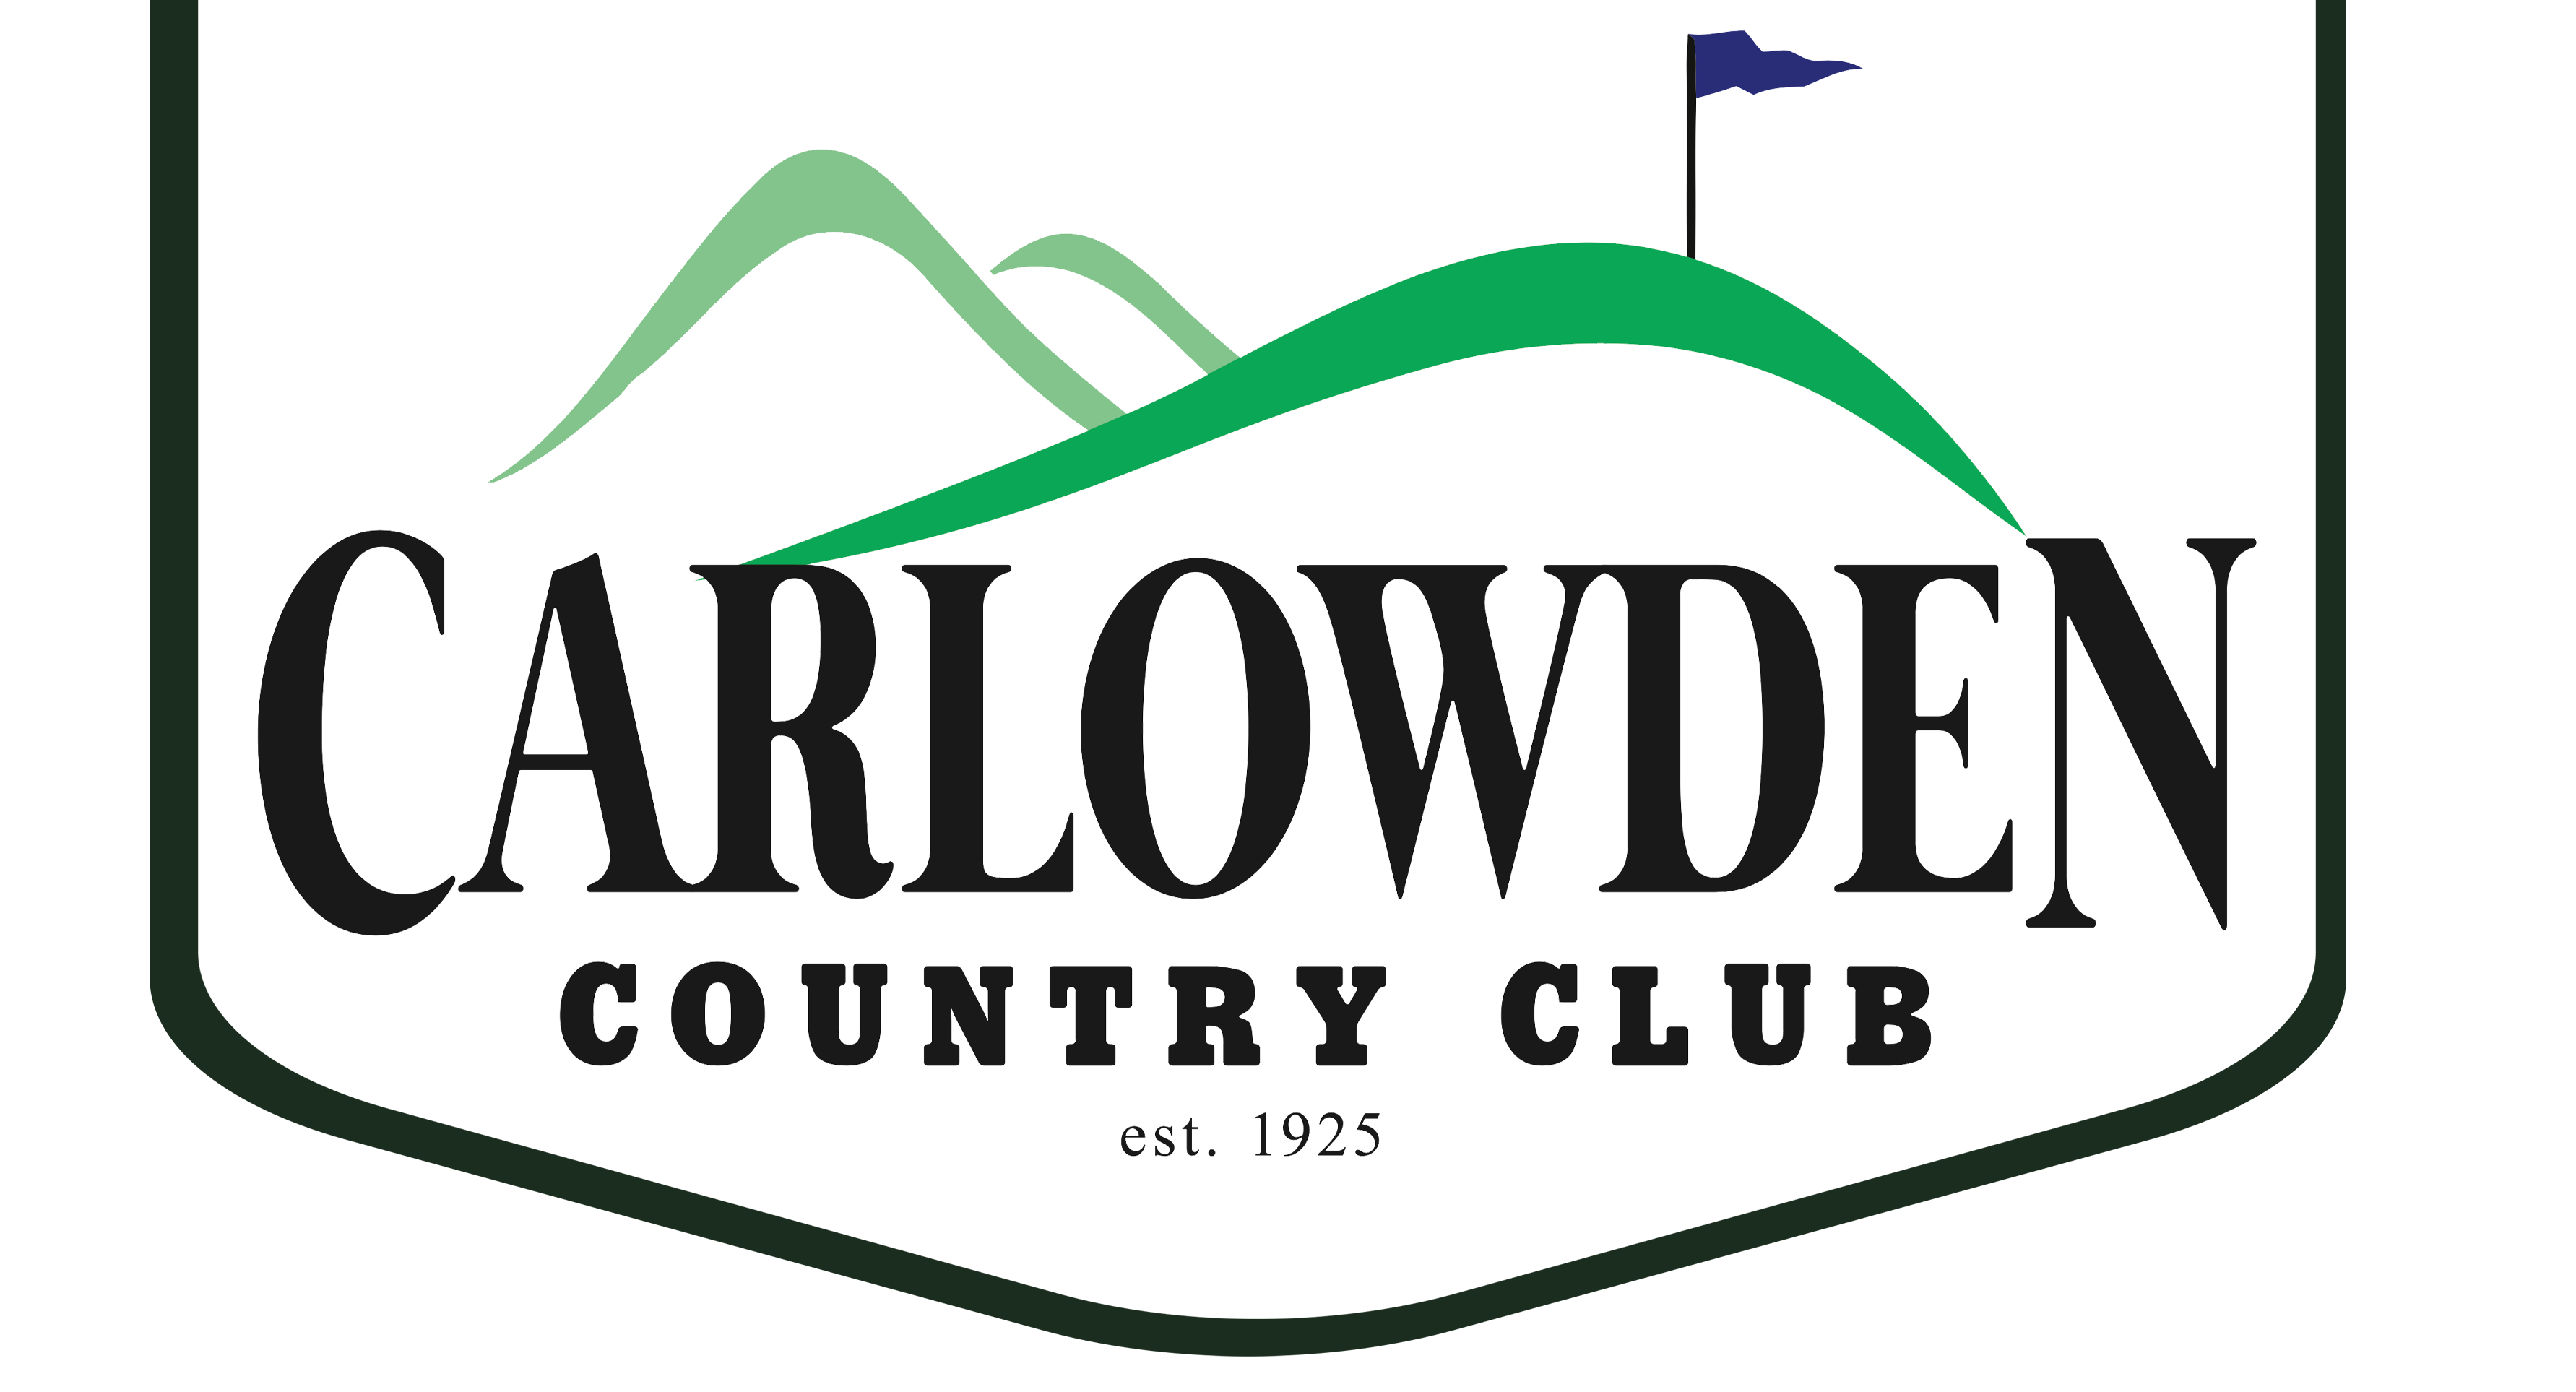 Carlowden Country Club